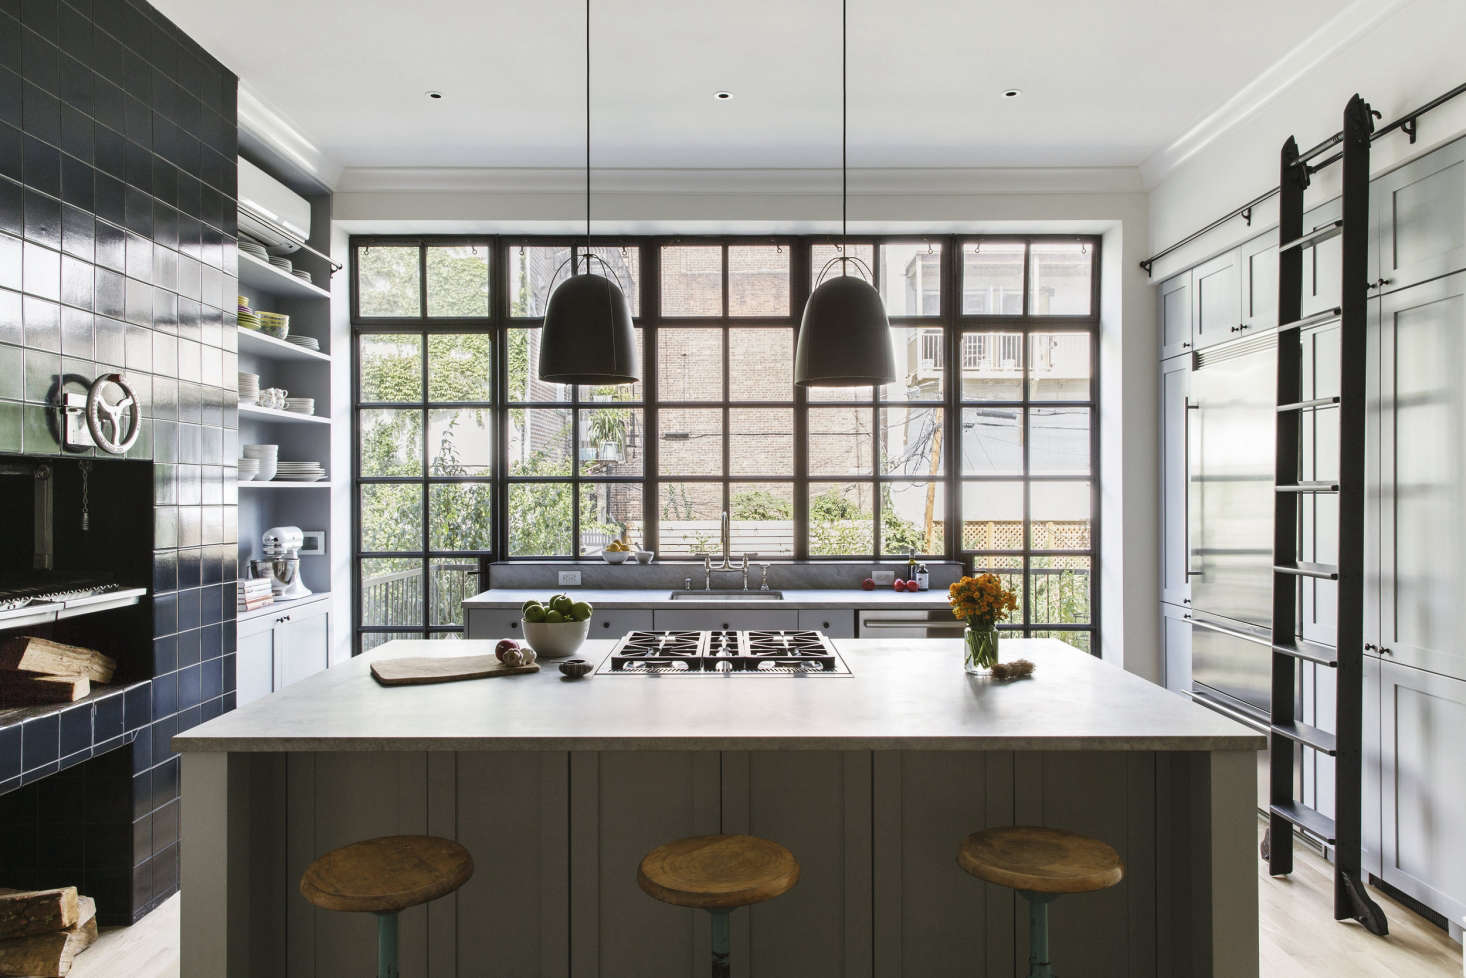 In a Brooklyn kitchen, Elizabeth Roberts added a wall of cabinetry accessed via a rolling ladder from Rolling Ladders. For more, go to Brooklyn Revival: A Bright and Open Family House. Photograph by Dustin Aksland, courtesy of Elizabeth Roberts.